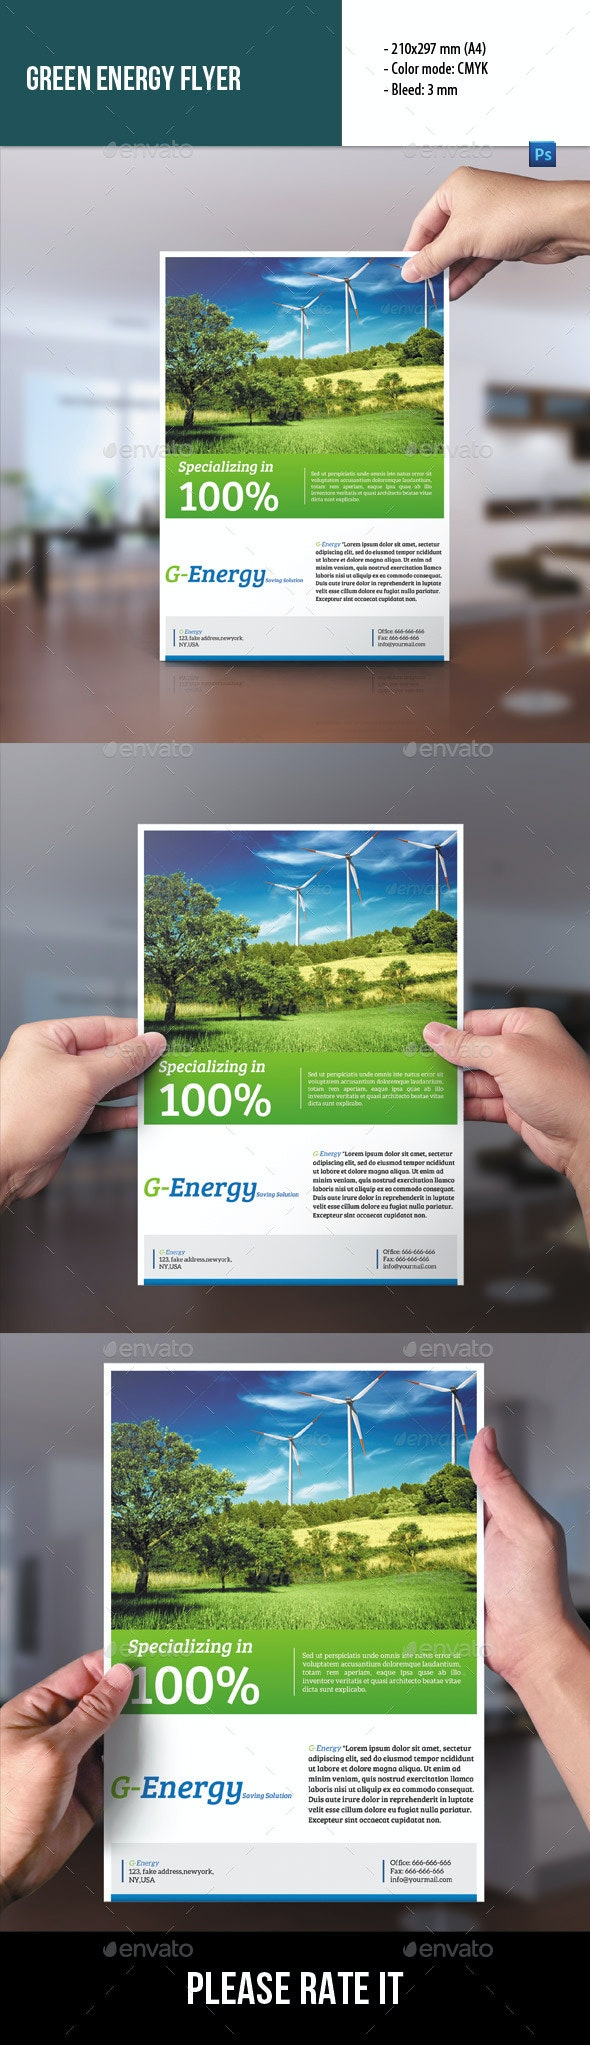 Green Energy Flyer - Corporate Flyers